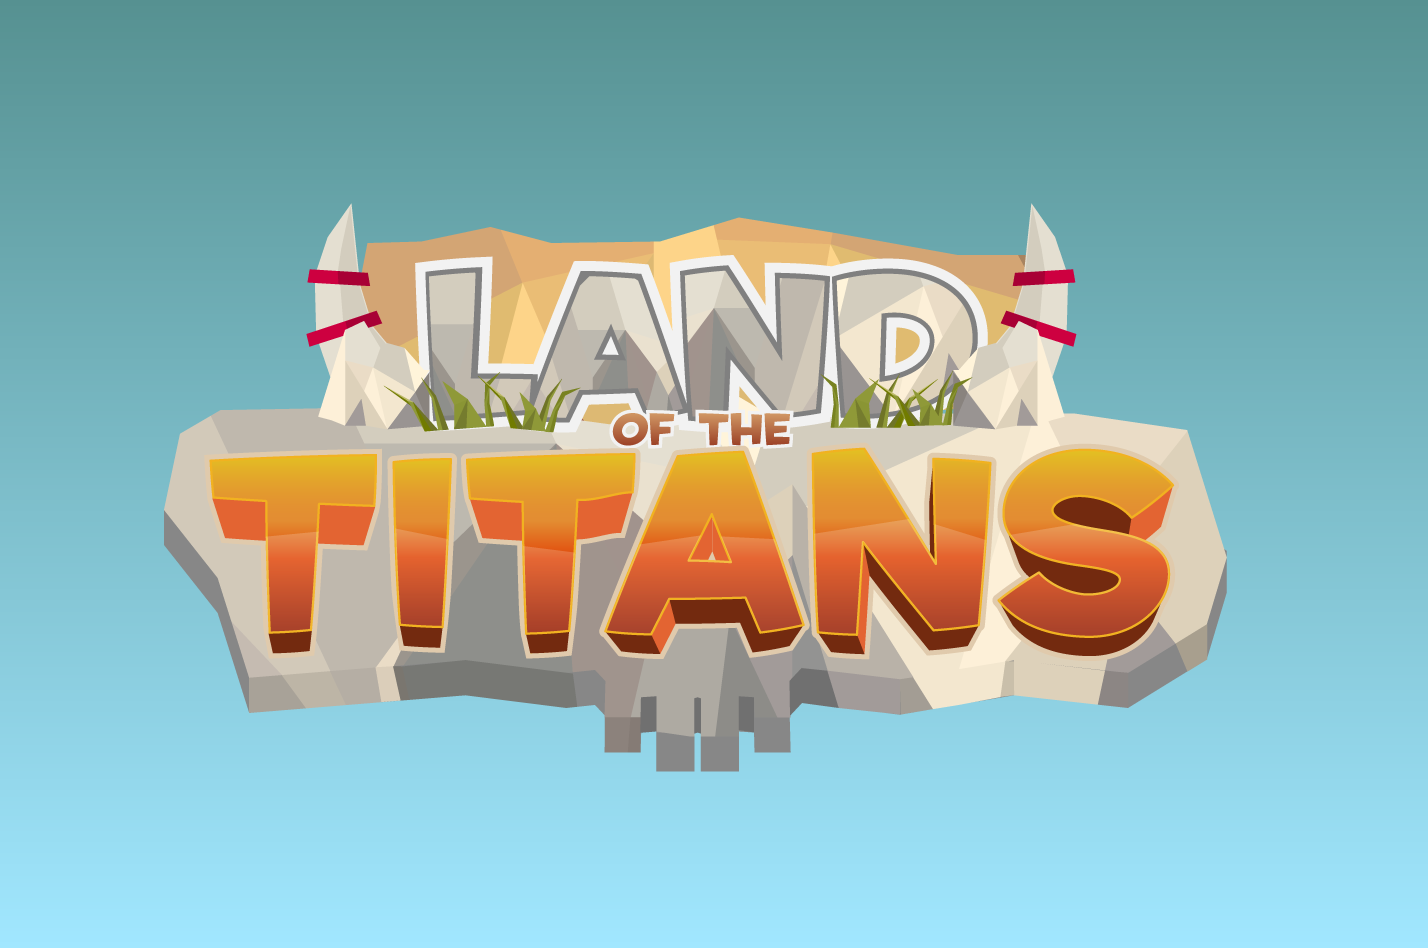 Land of the Titans!